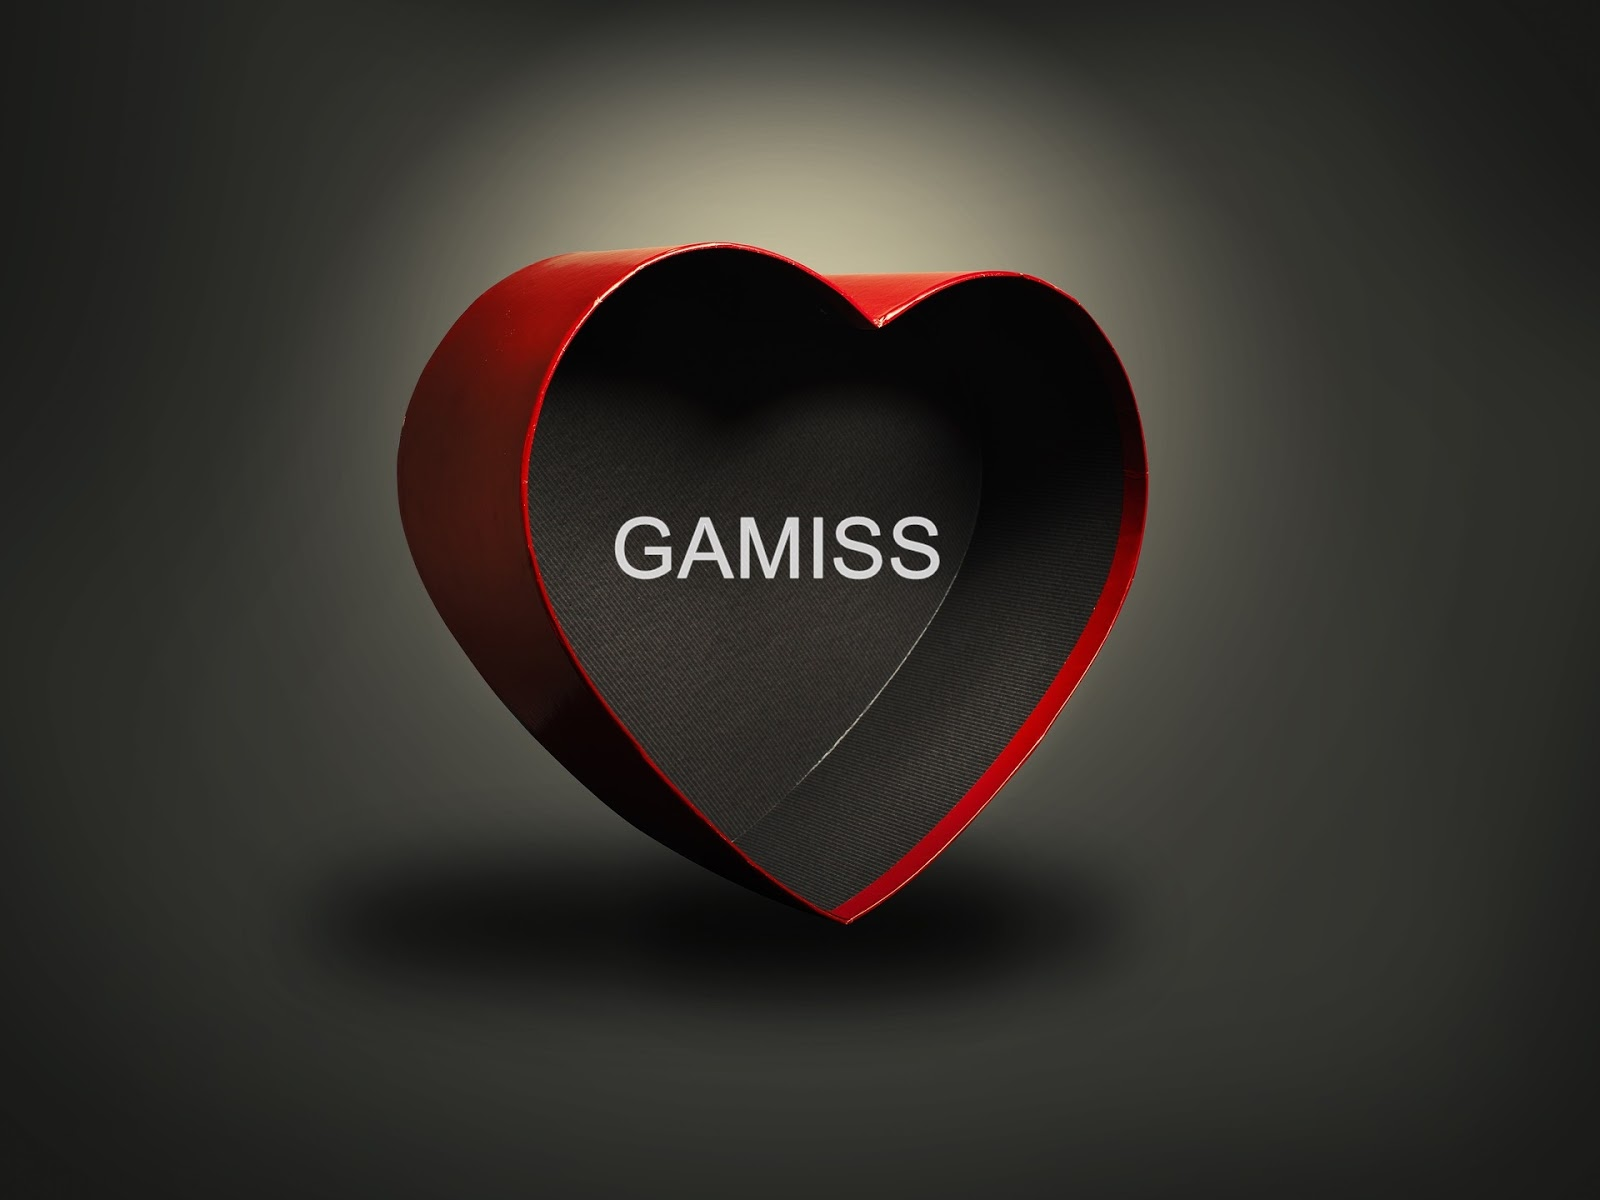 GAMISS VALENTINES GIFTS 2018